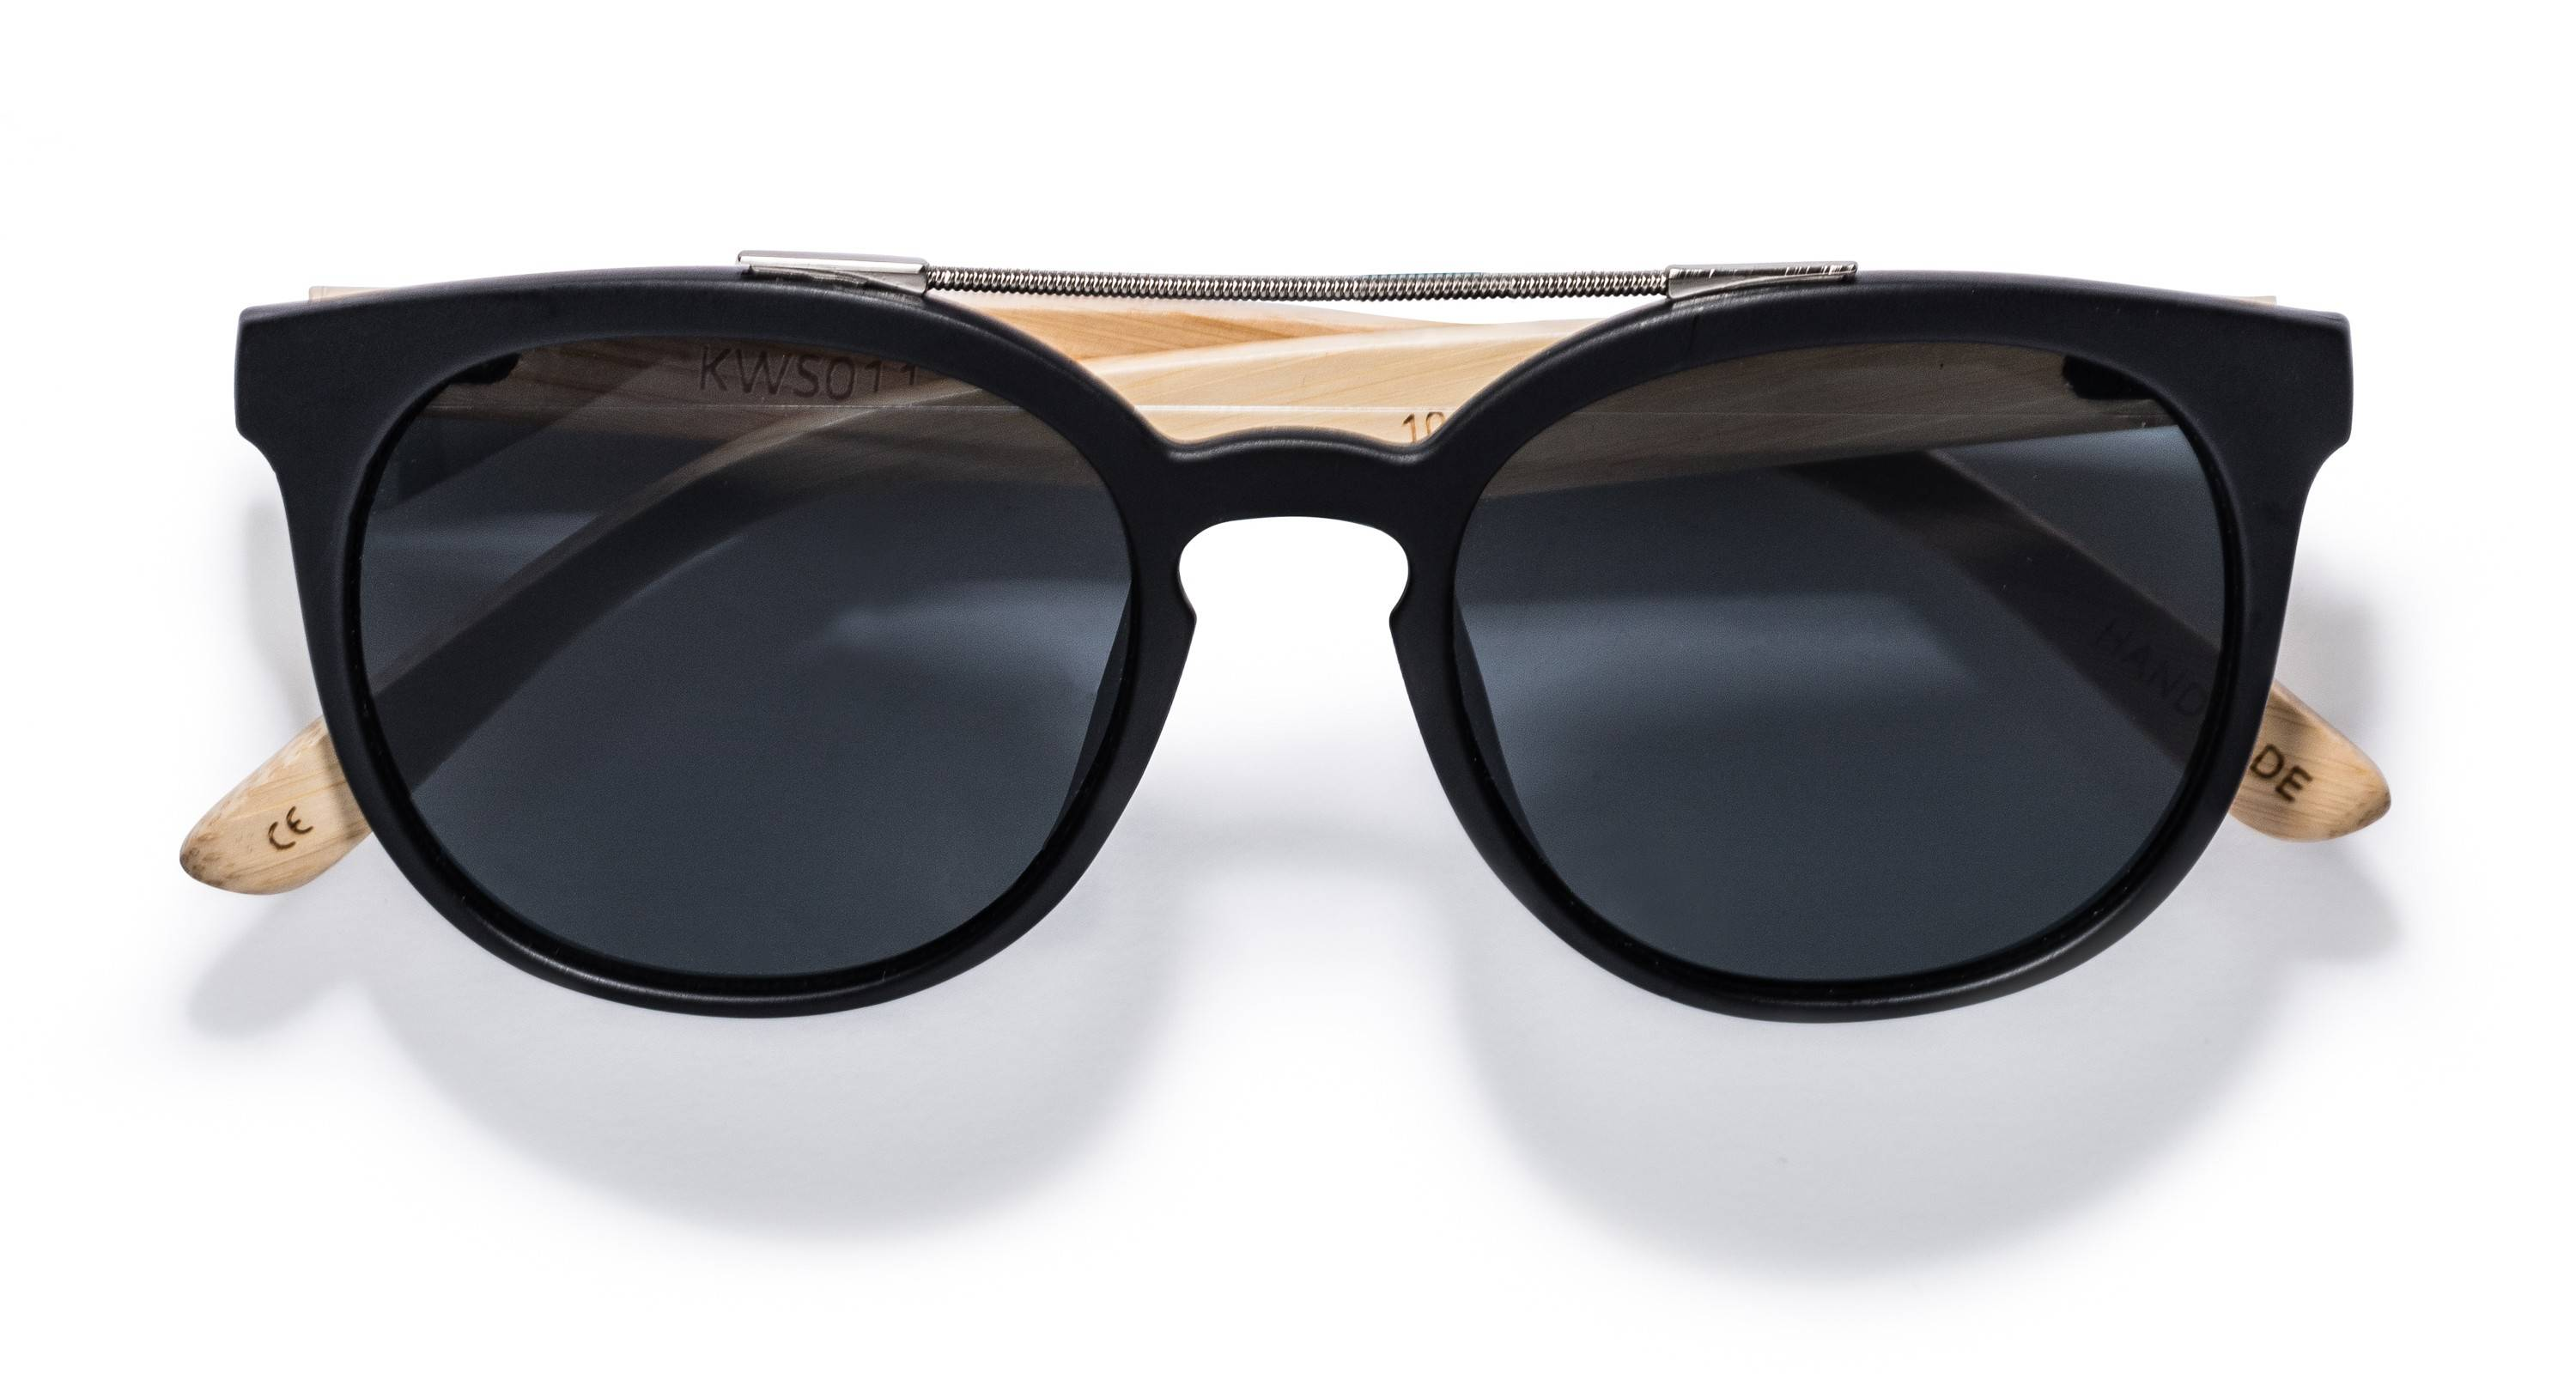 Kraywoods Sienna, Double Bridge Sunglasses made from Bamboo wood with 100% UV Protection Lenses